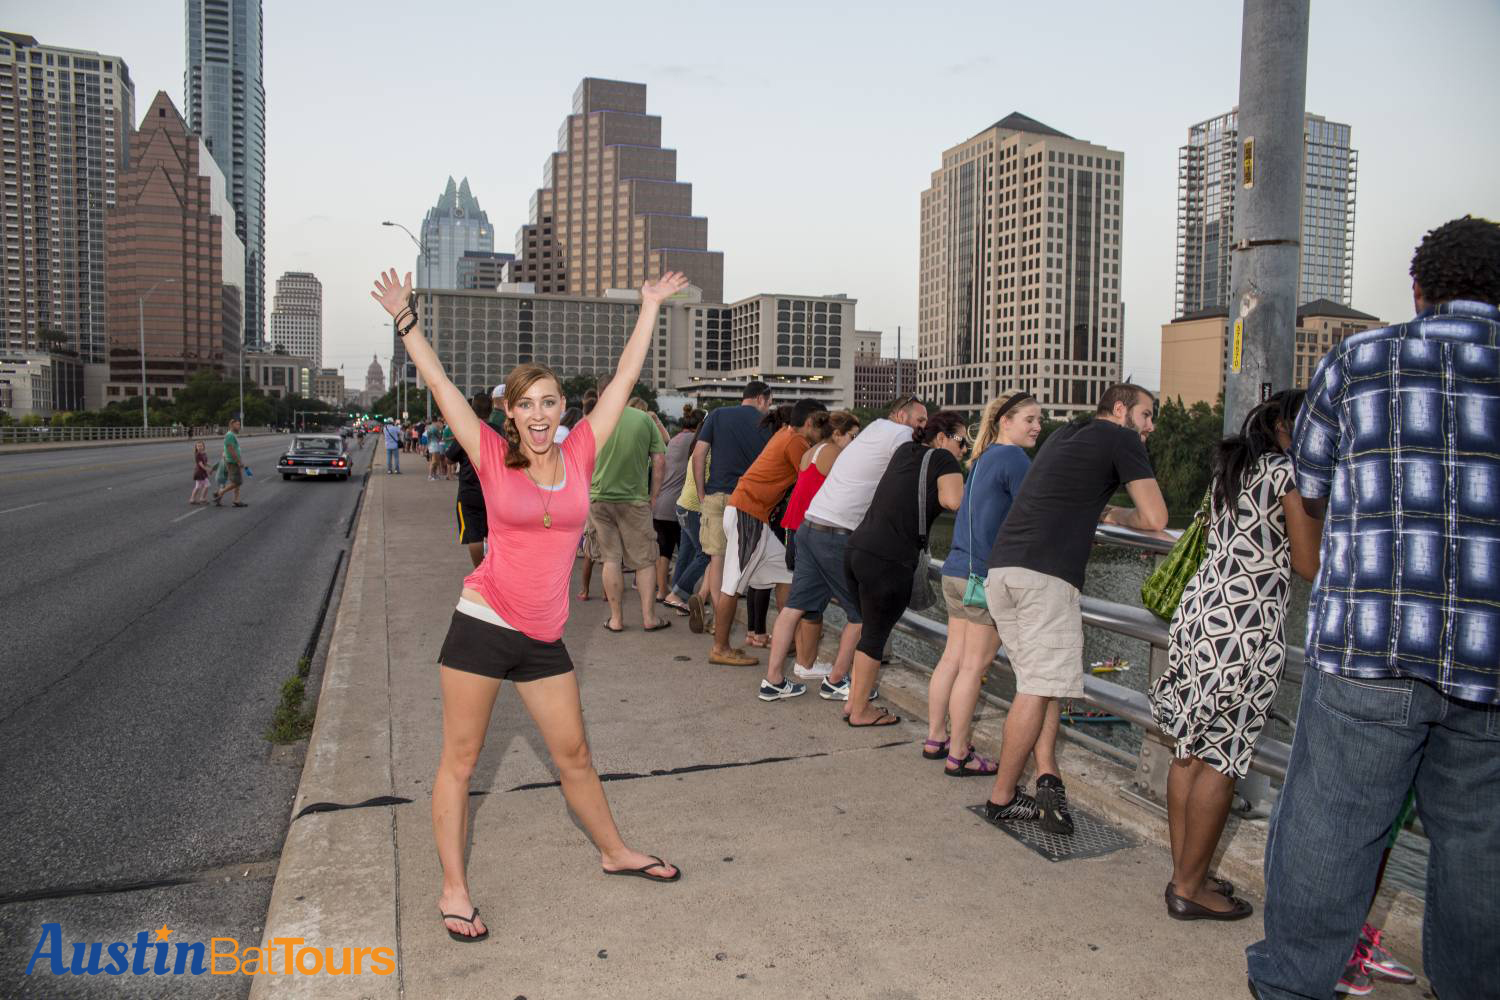 Cheerful attractive Austin tourist waves with excitement and joy while waiting for the bats to take flight on the Congress Avenue Bat Bridge